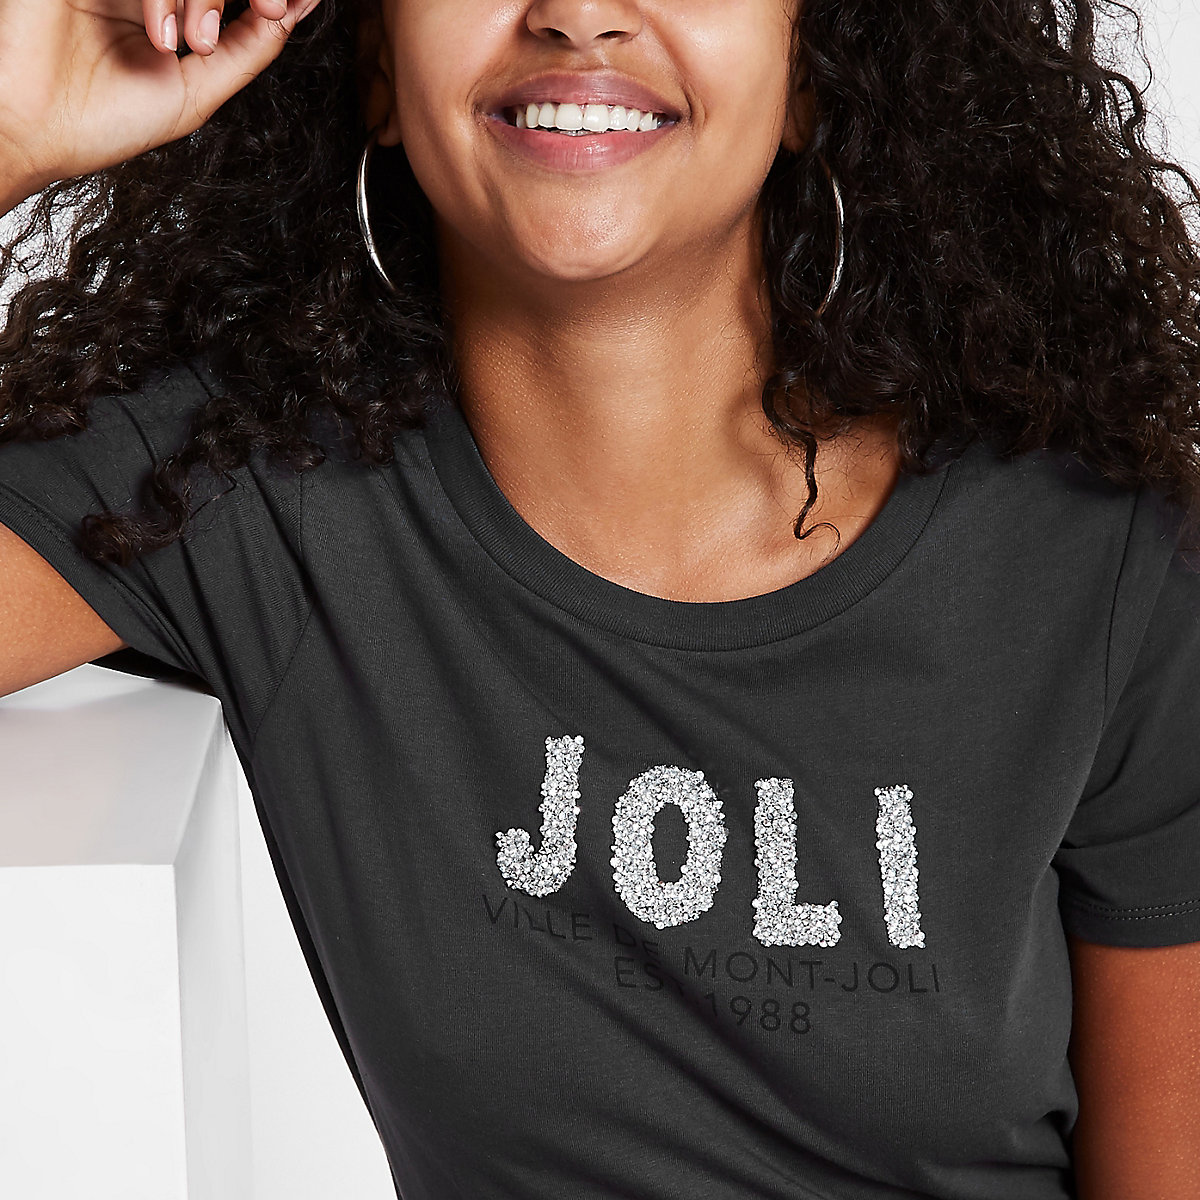 Dark grey 'Joli' rhinestone embellished T-shirt